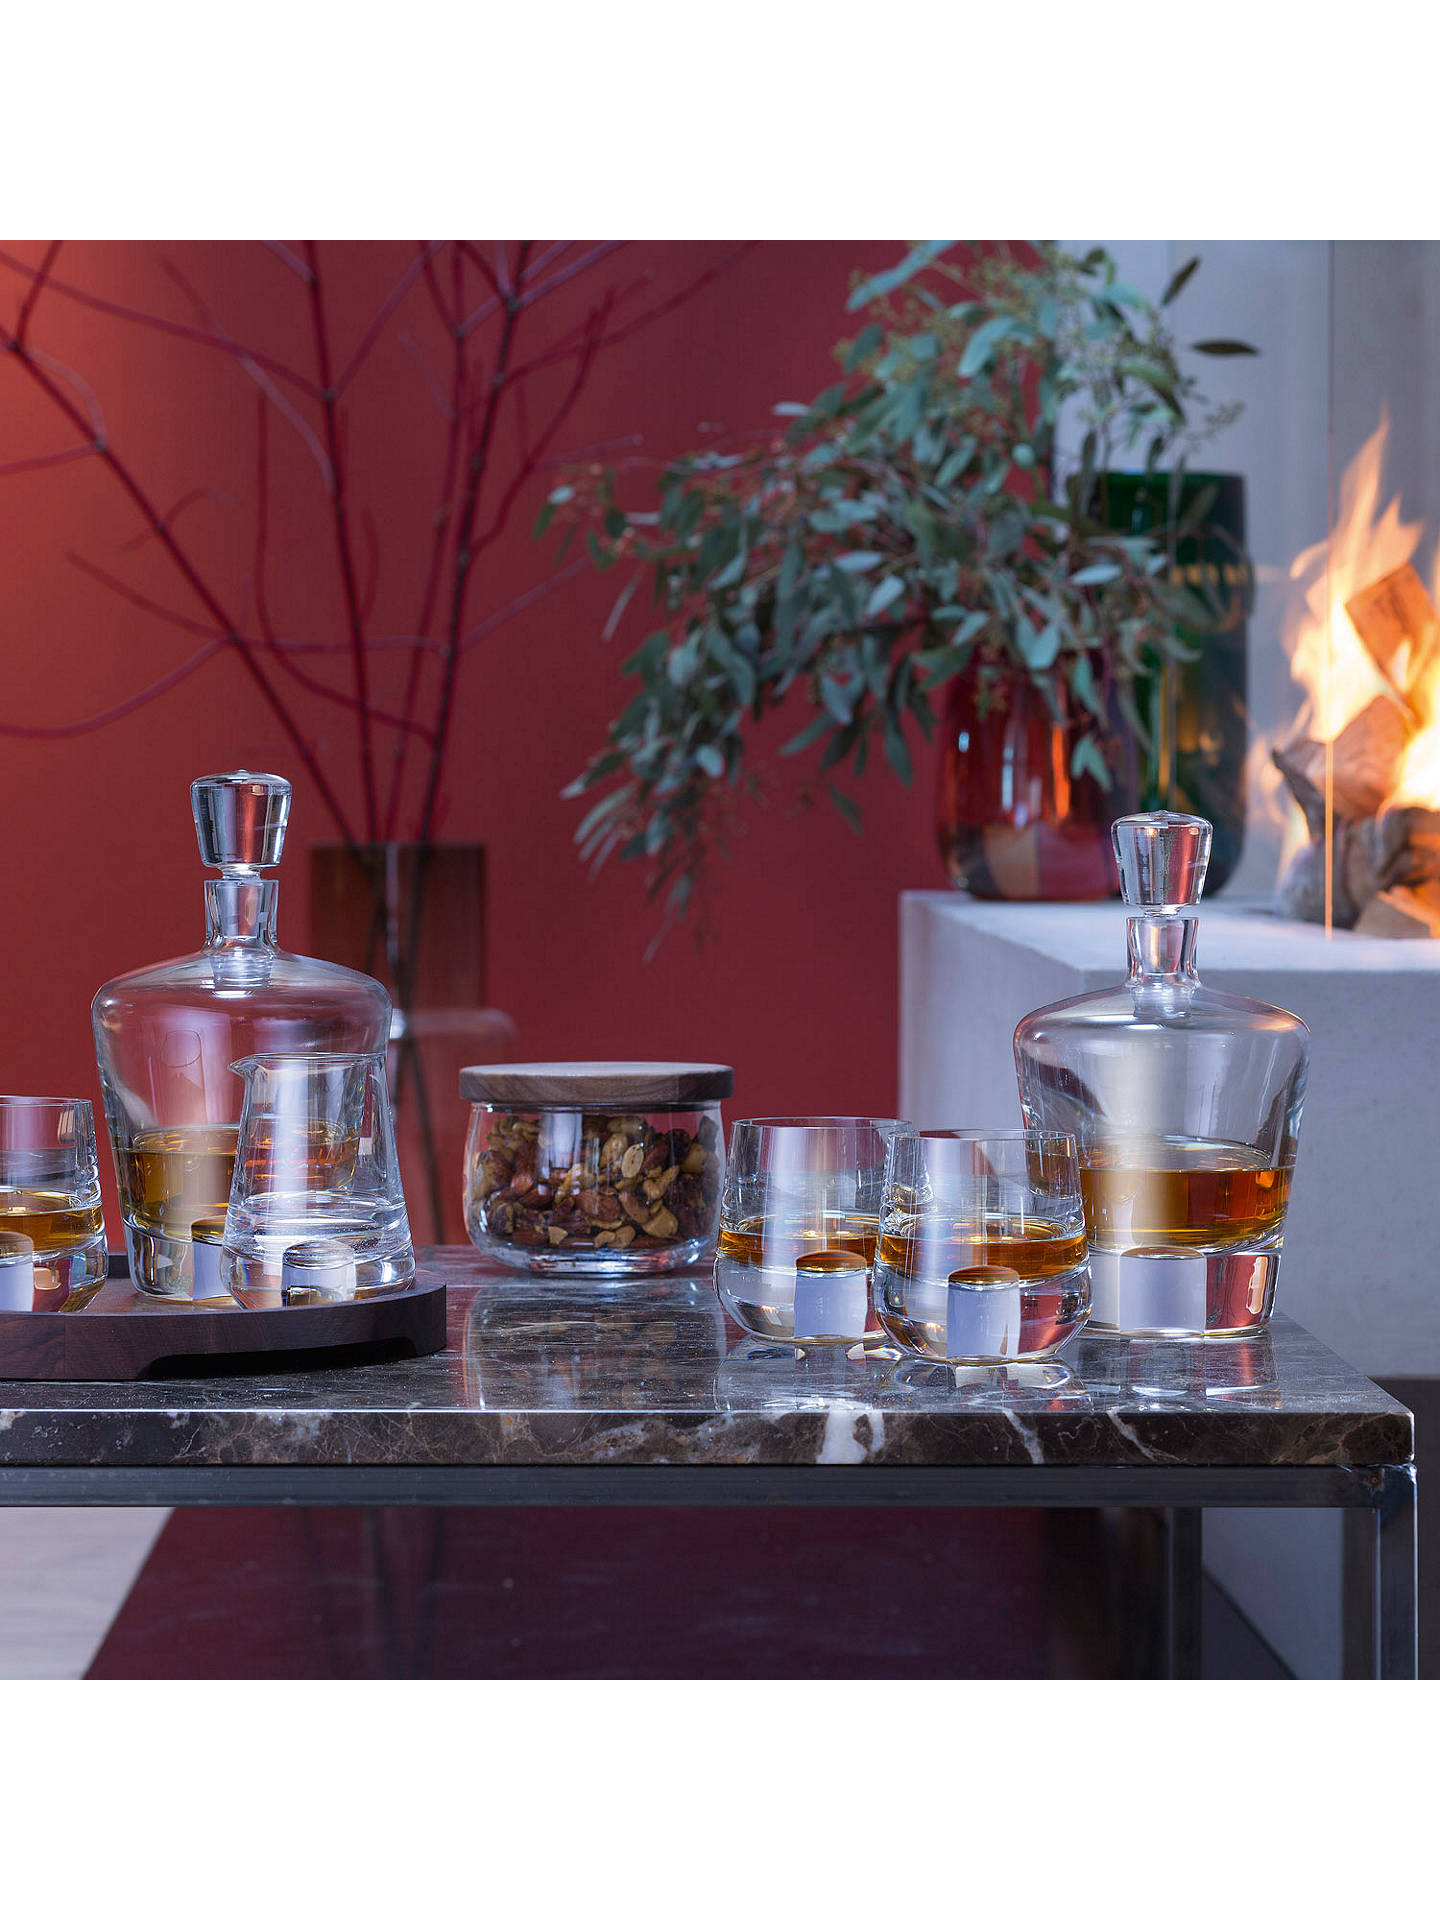 BuyLSA International Whisky Cut Glass Decanter with Tumblers and Tray Set, 5 Pieces Online at johnlewis.com